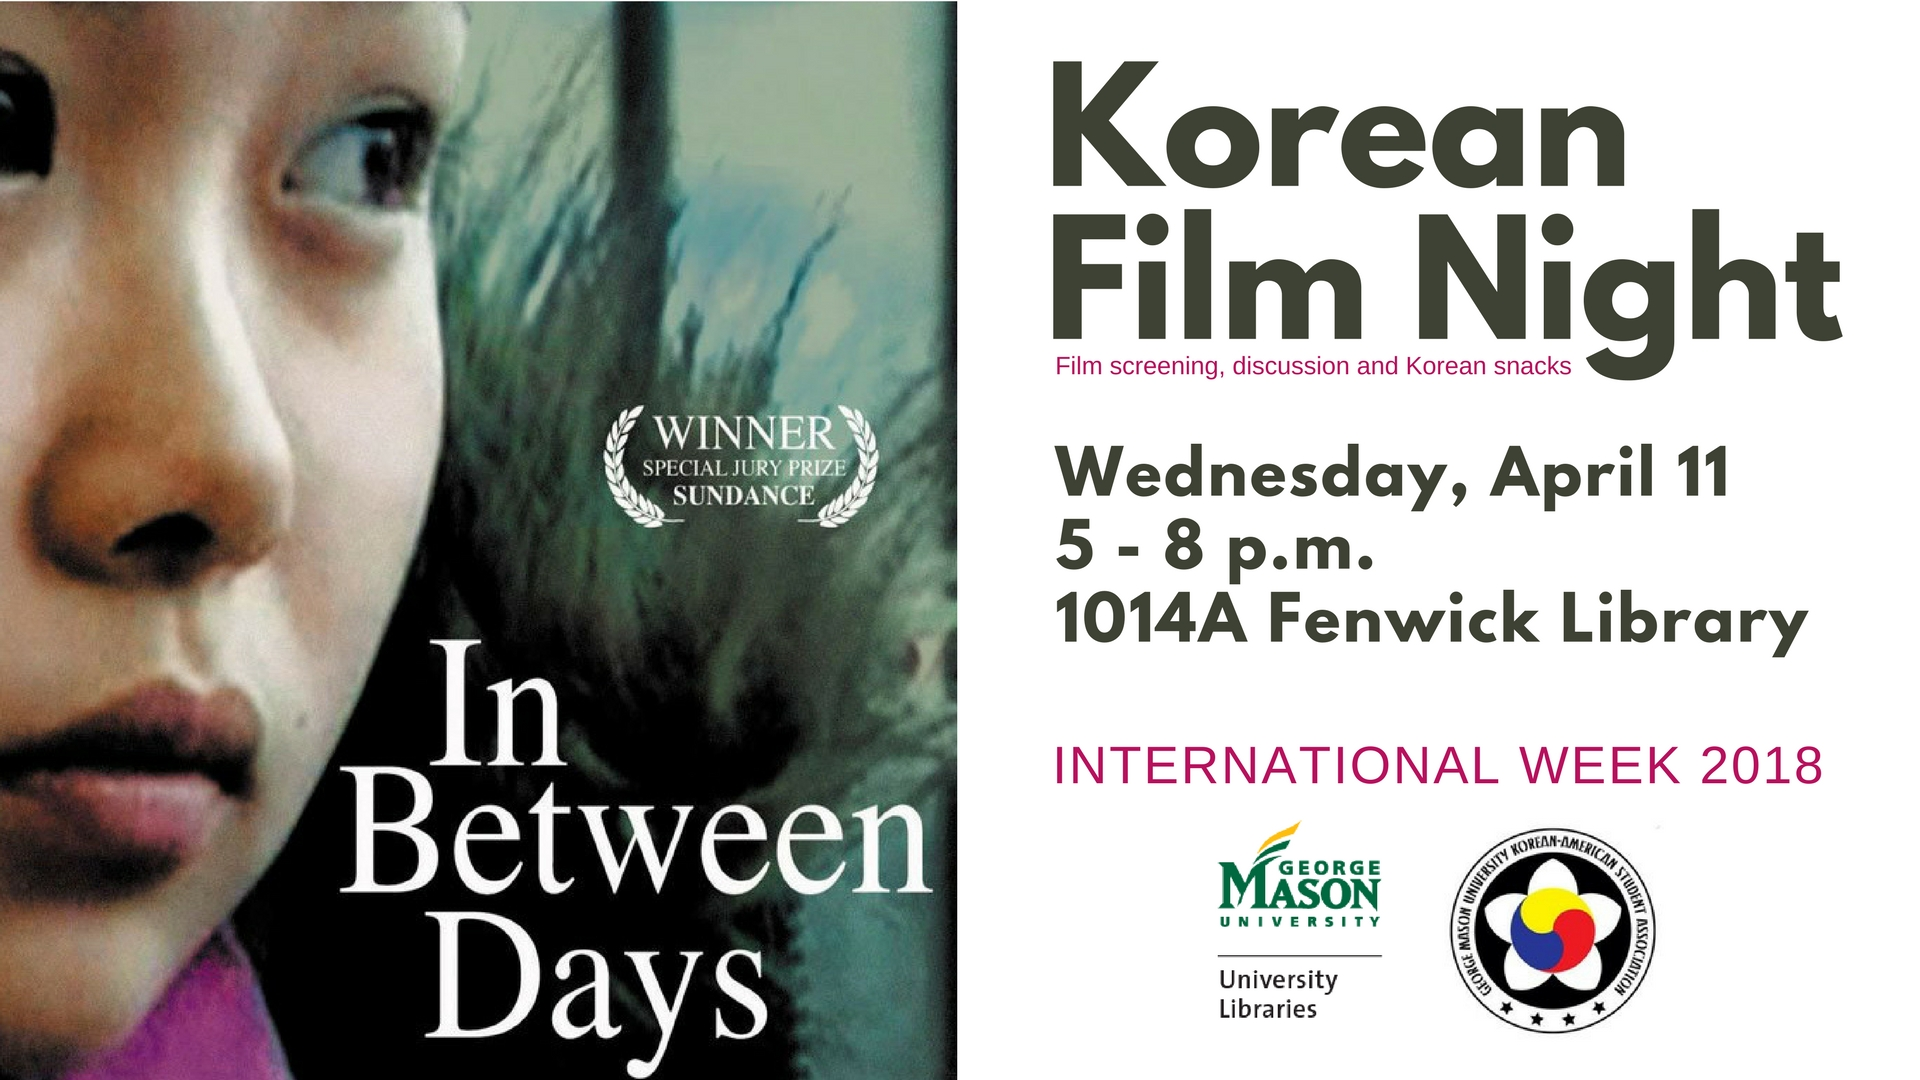 Korean Film Night: In Between Days